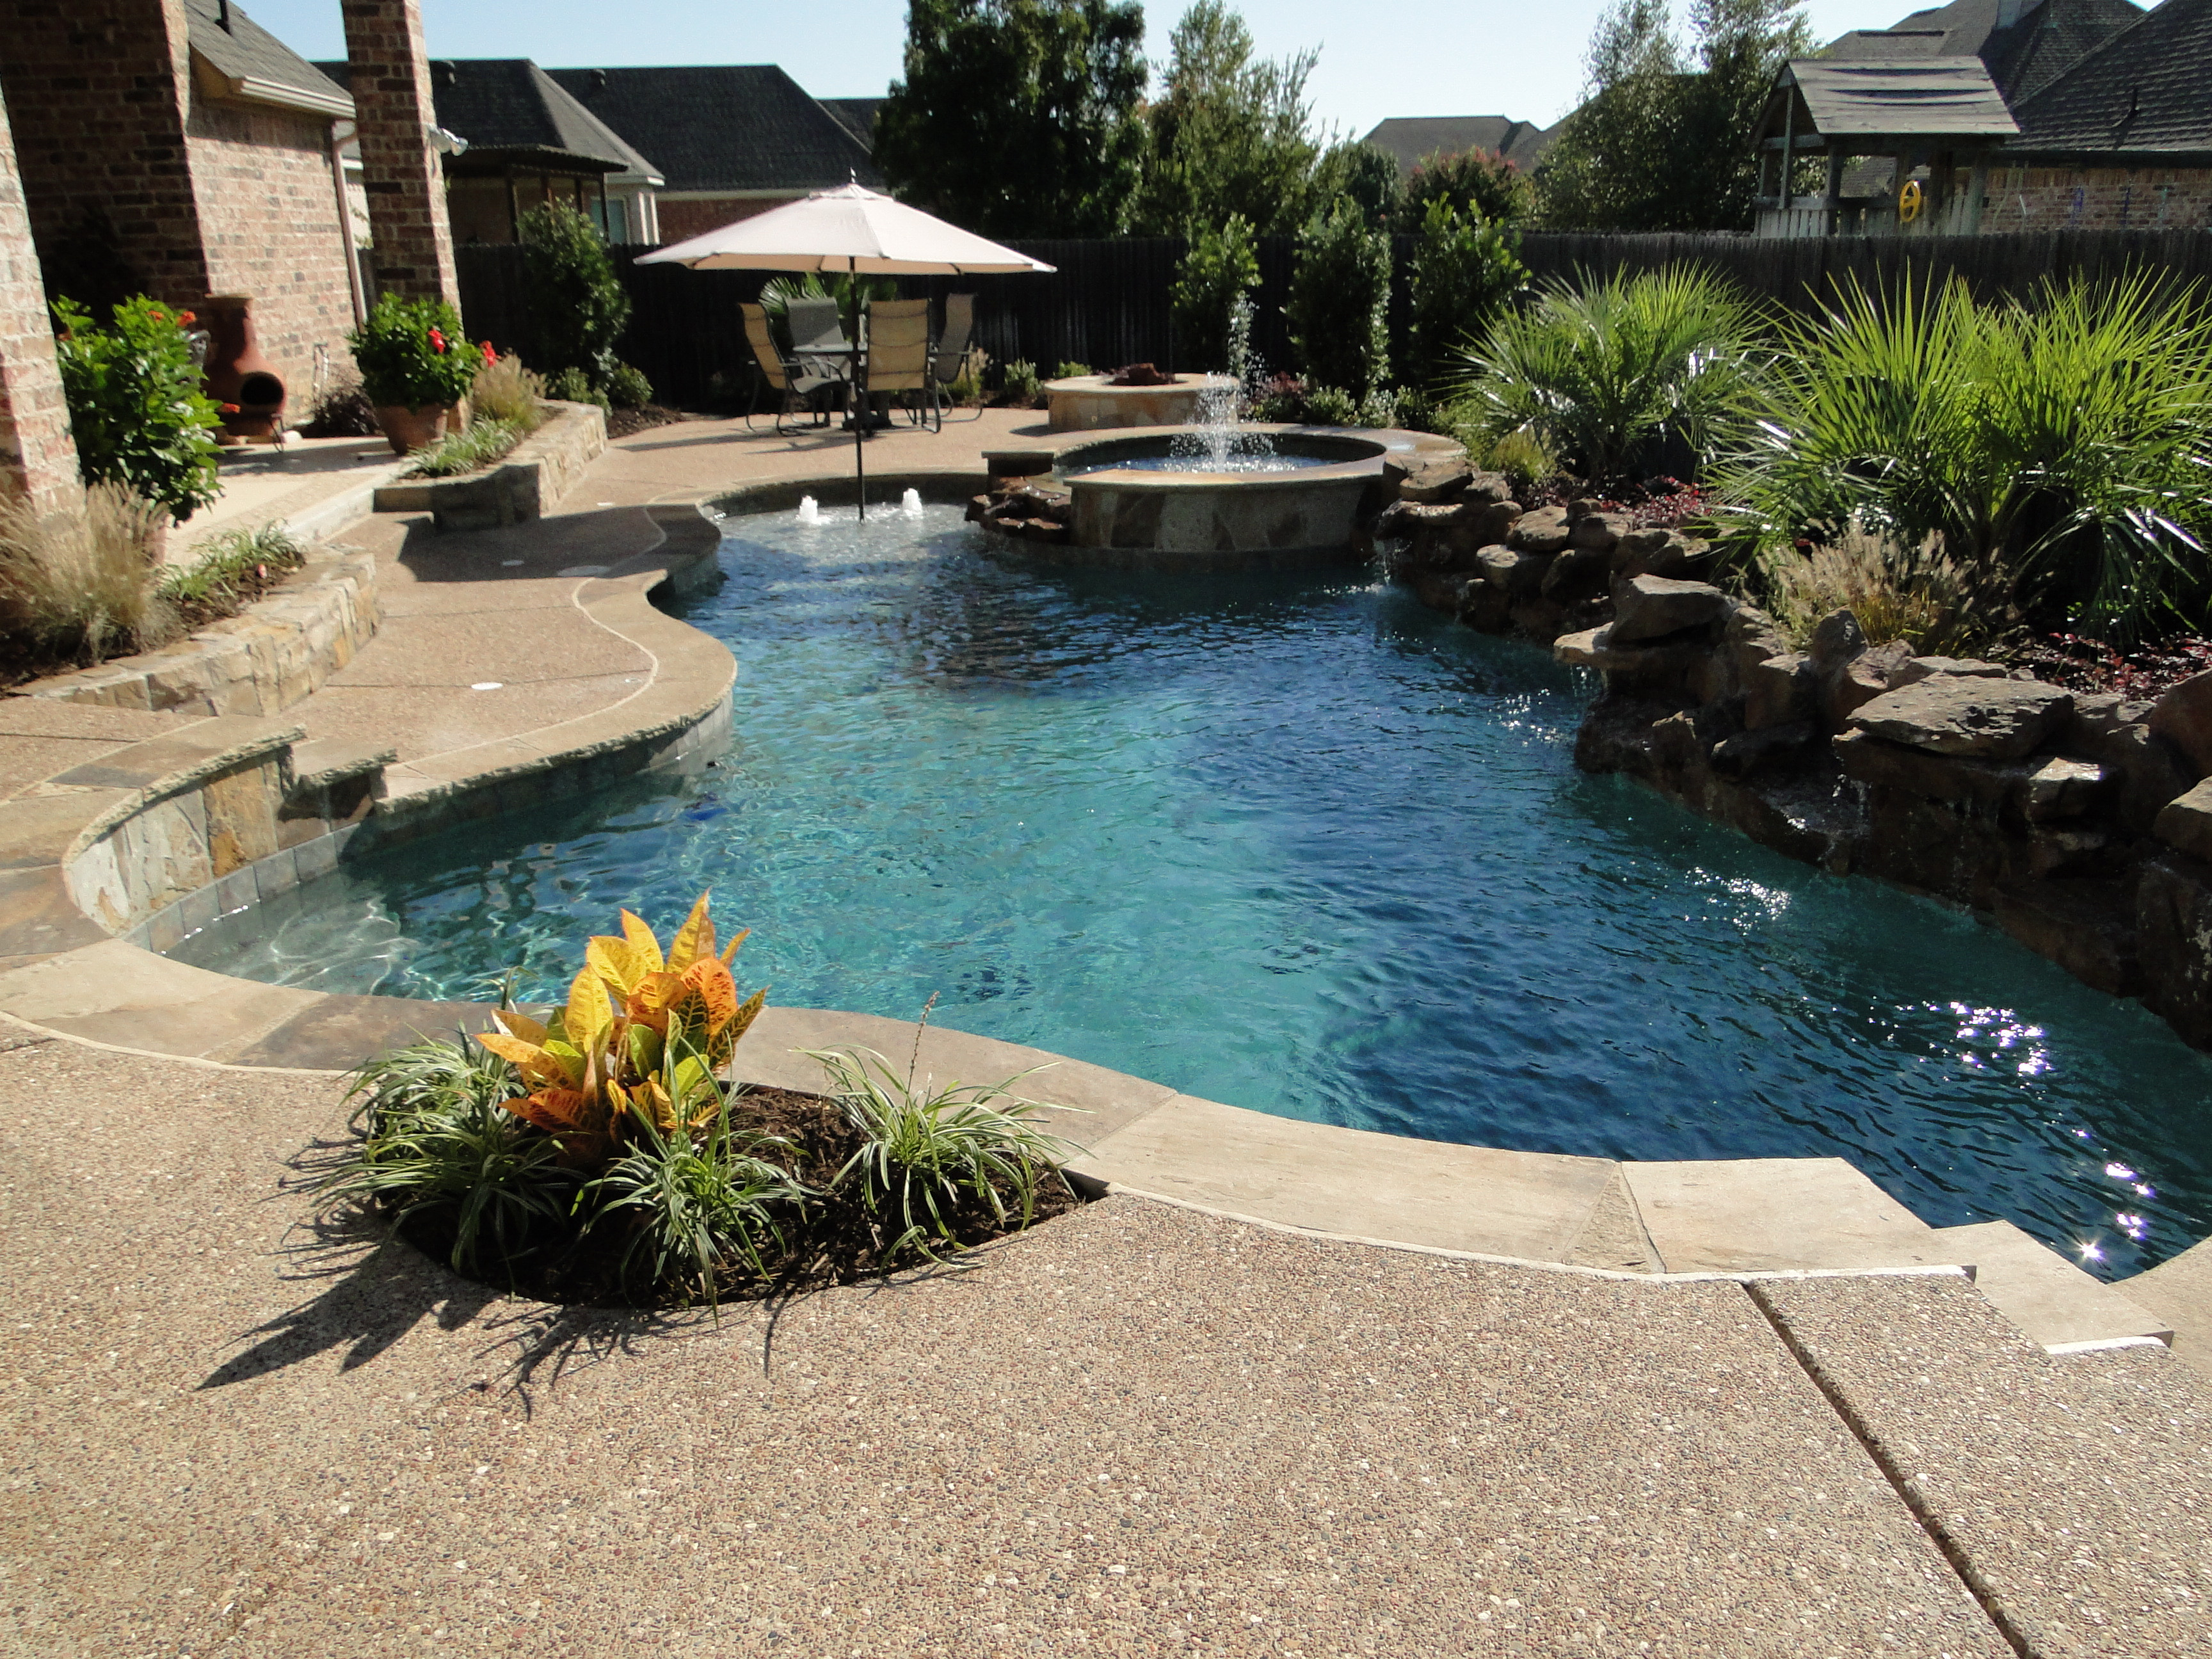 Best ideas about Pool Landscape Ideas . Save or Pin Backyard Landscaping Ideas Swimming Pool Design Now.